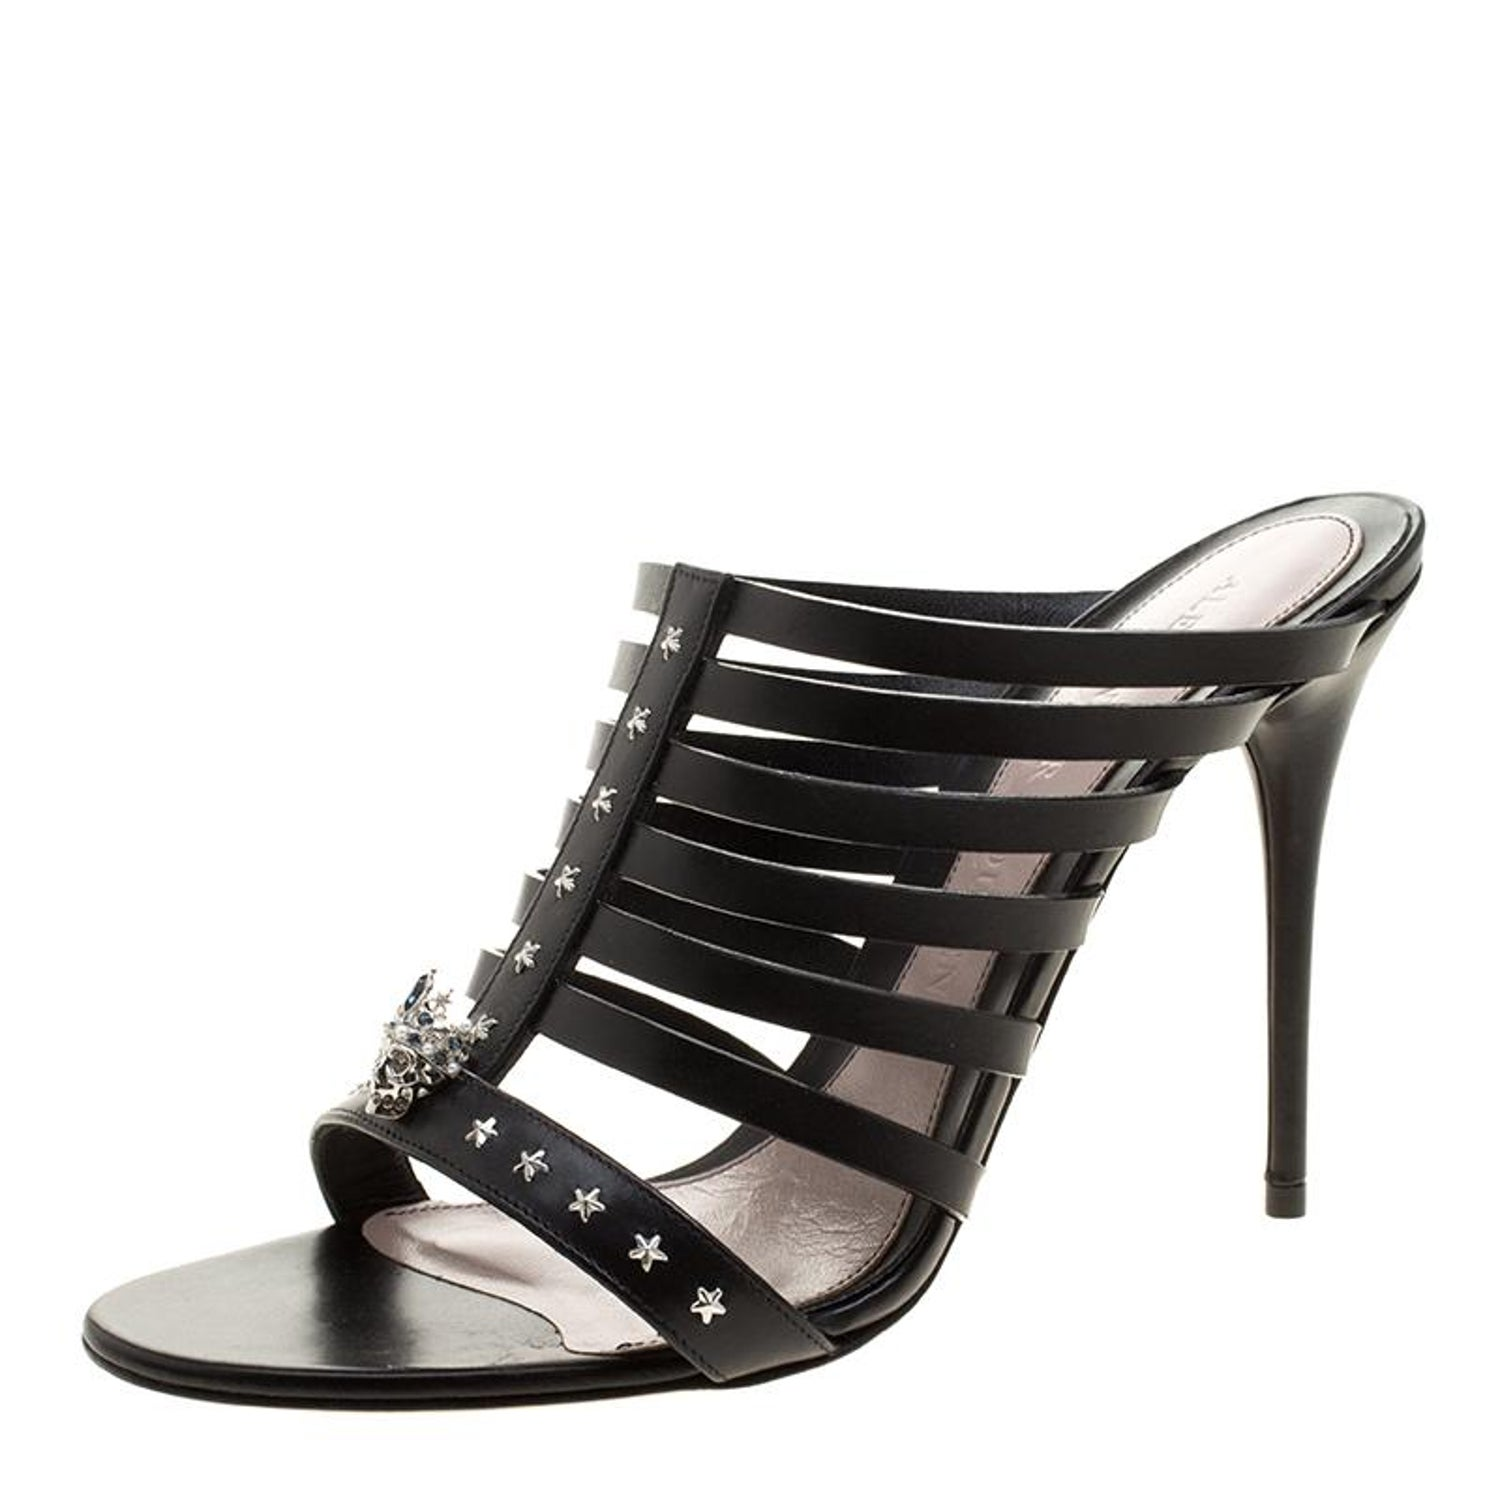 3d2aecdd08c Alexander McQueen Black Skull-Star Studded Leather Strappy Peep Toe Mules  Size 4 at 1stdibs